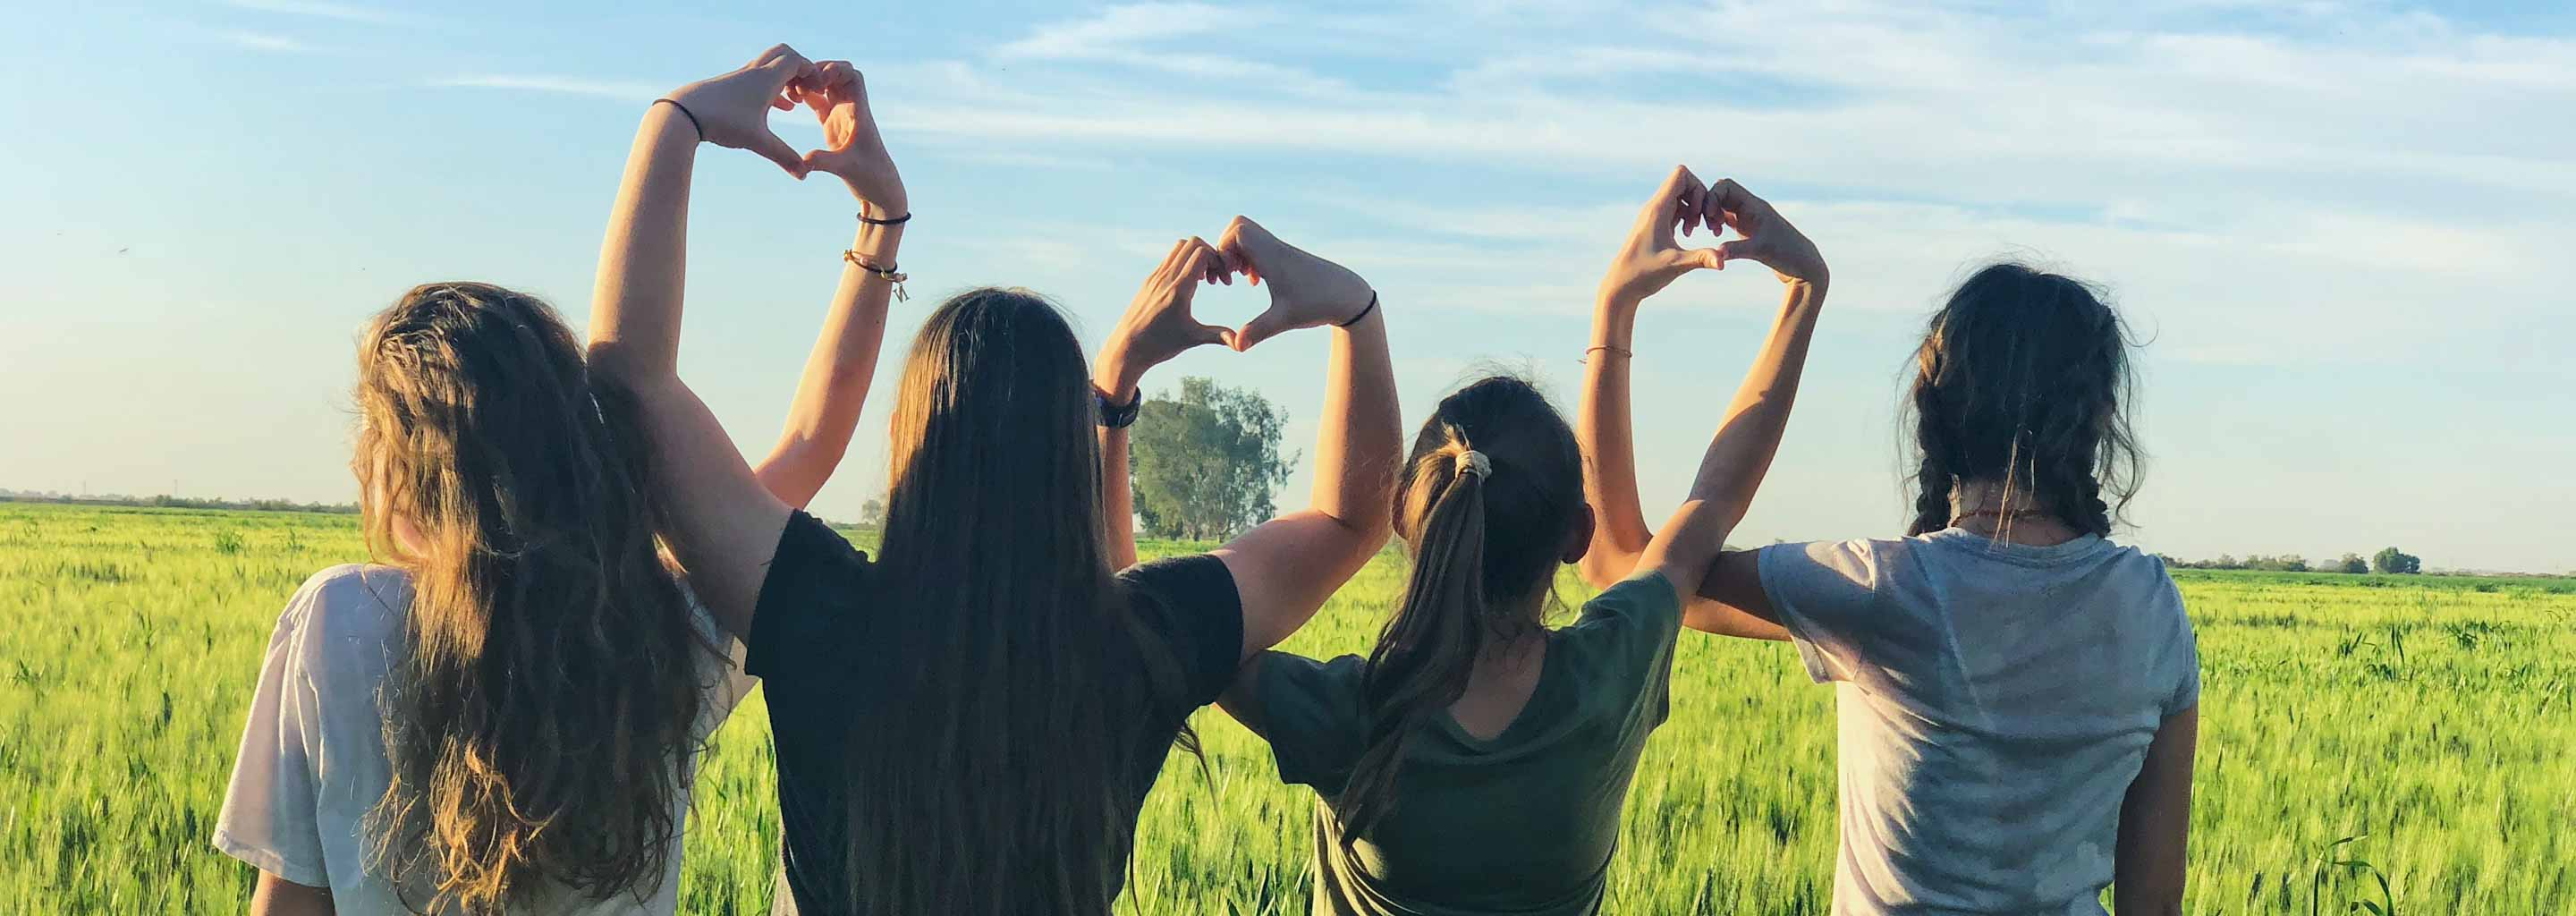 Girl friends with heart hands pose